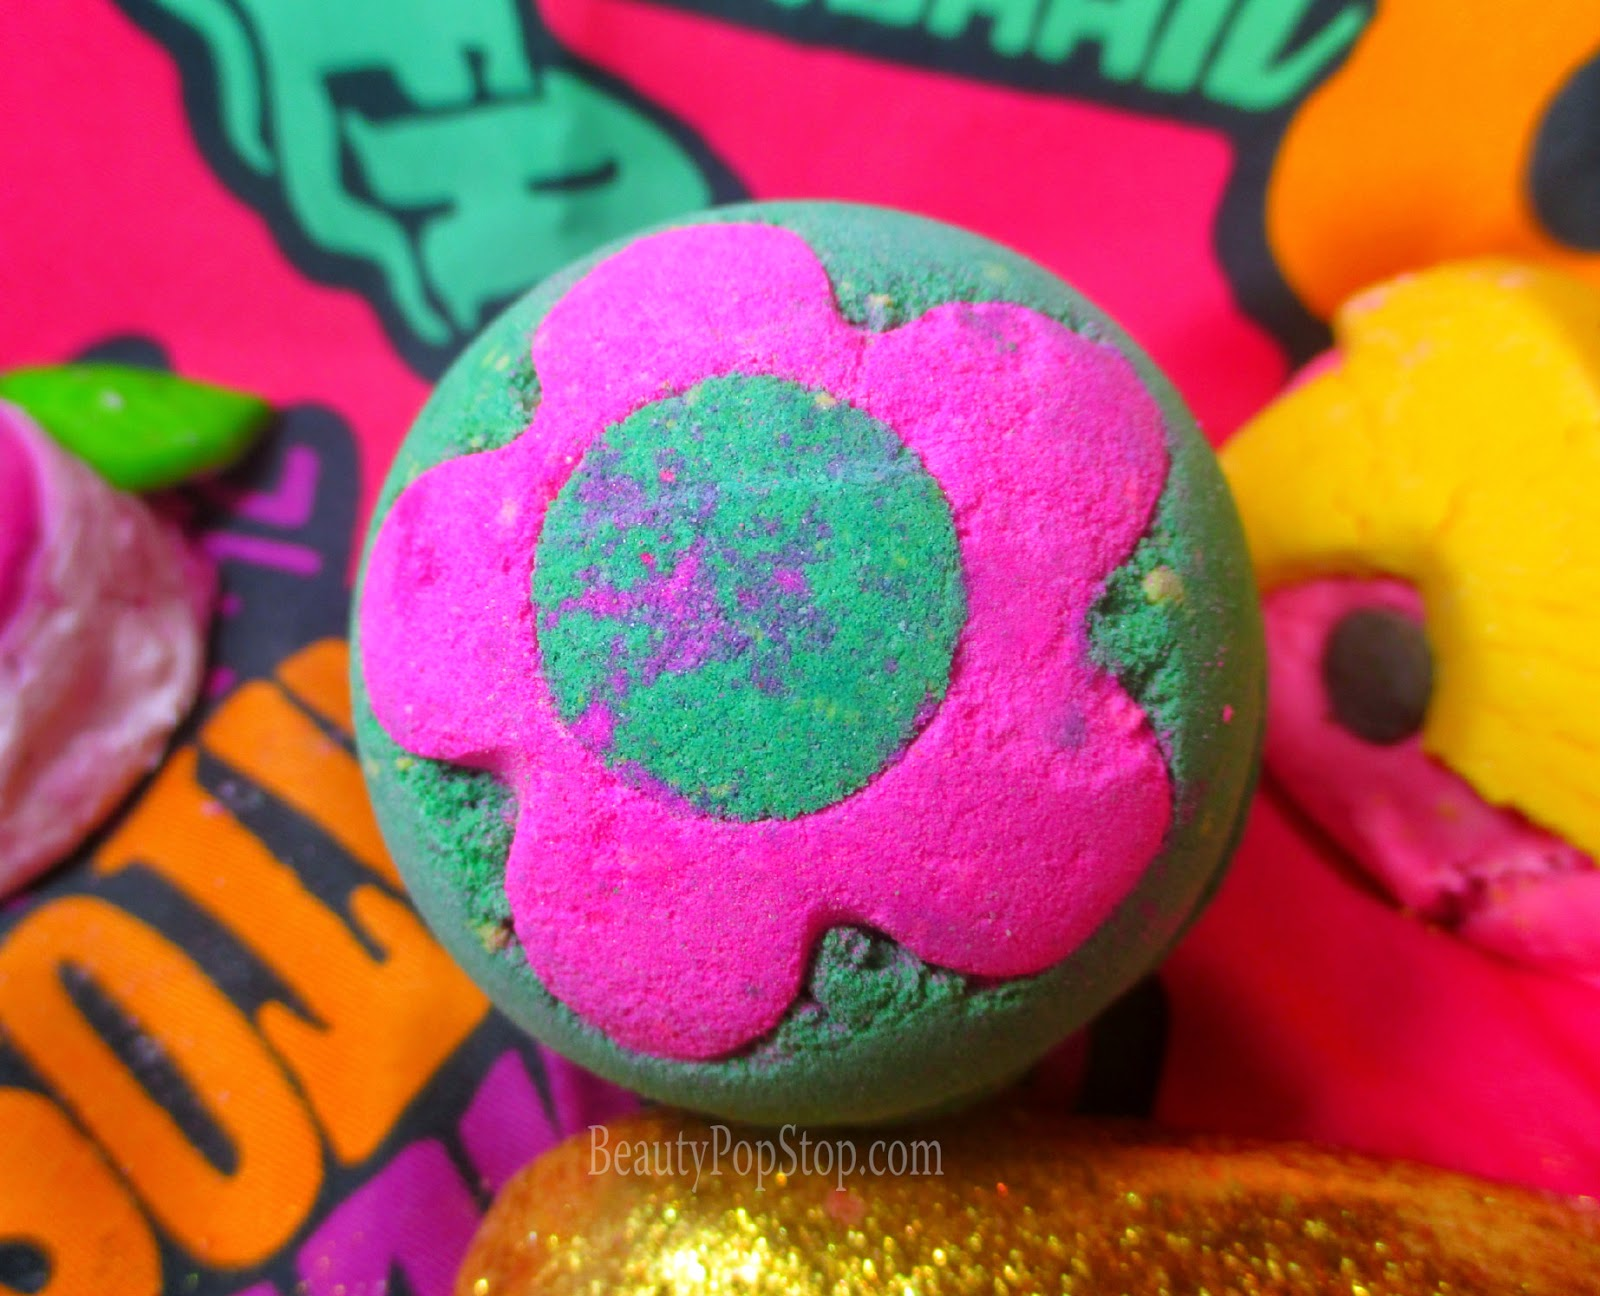 lush secret garden bath bomb review